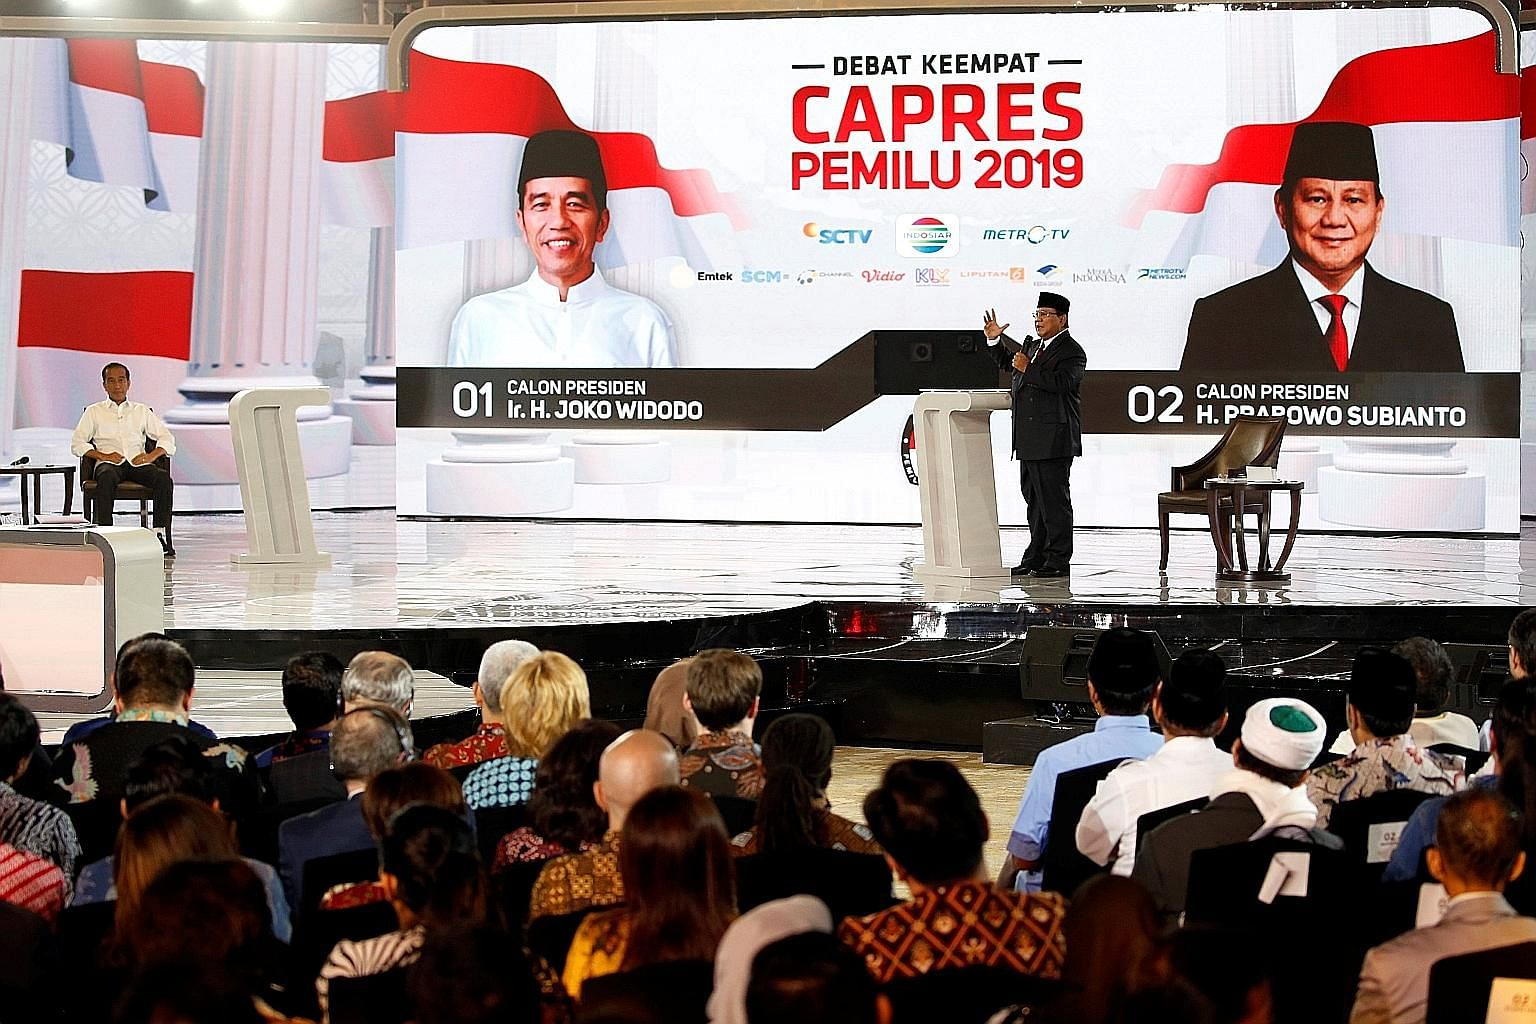 Indonesia's presidential candidate Prabowo Subianto and his rival, President Joko Widodo, during the televised debate last Saturday, ahead of elections on April 17.